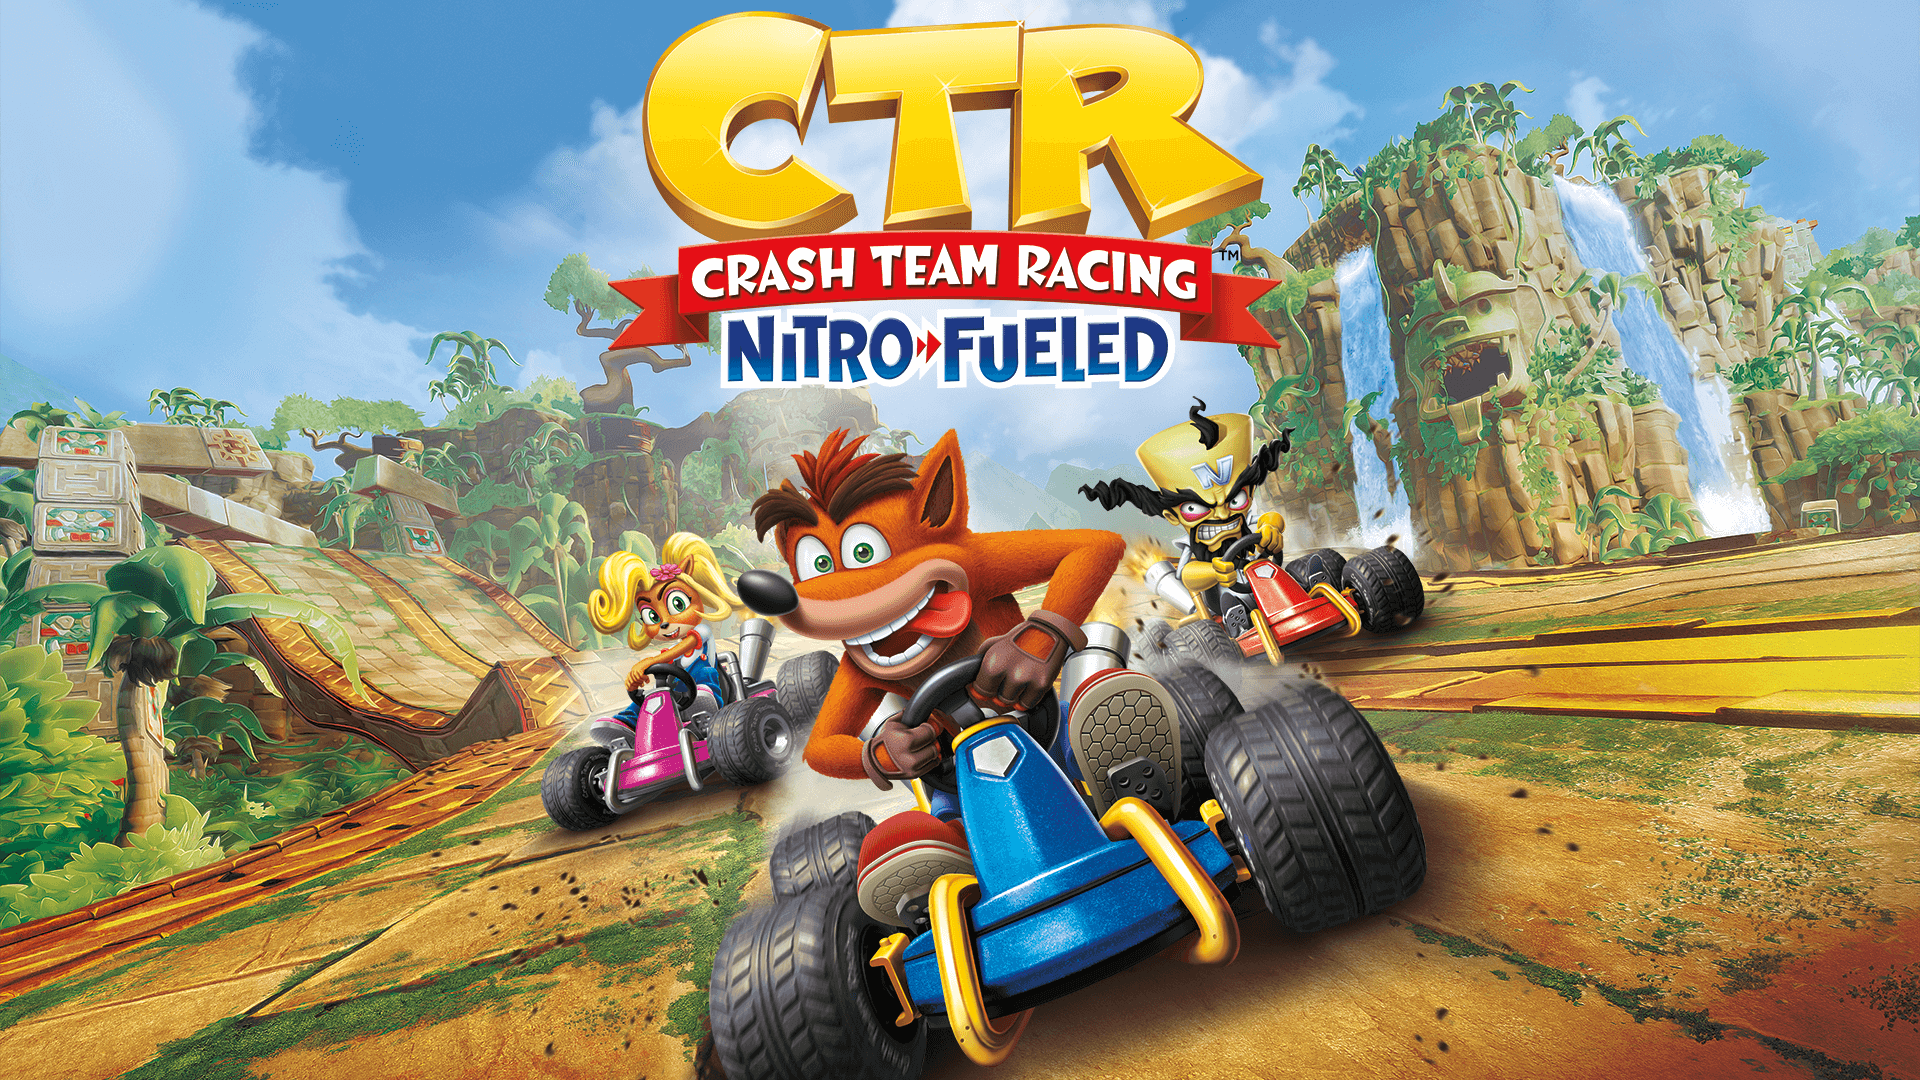 crash team racing nitro fueled background hd wallpaper 68139